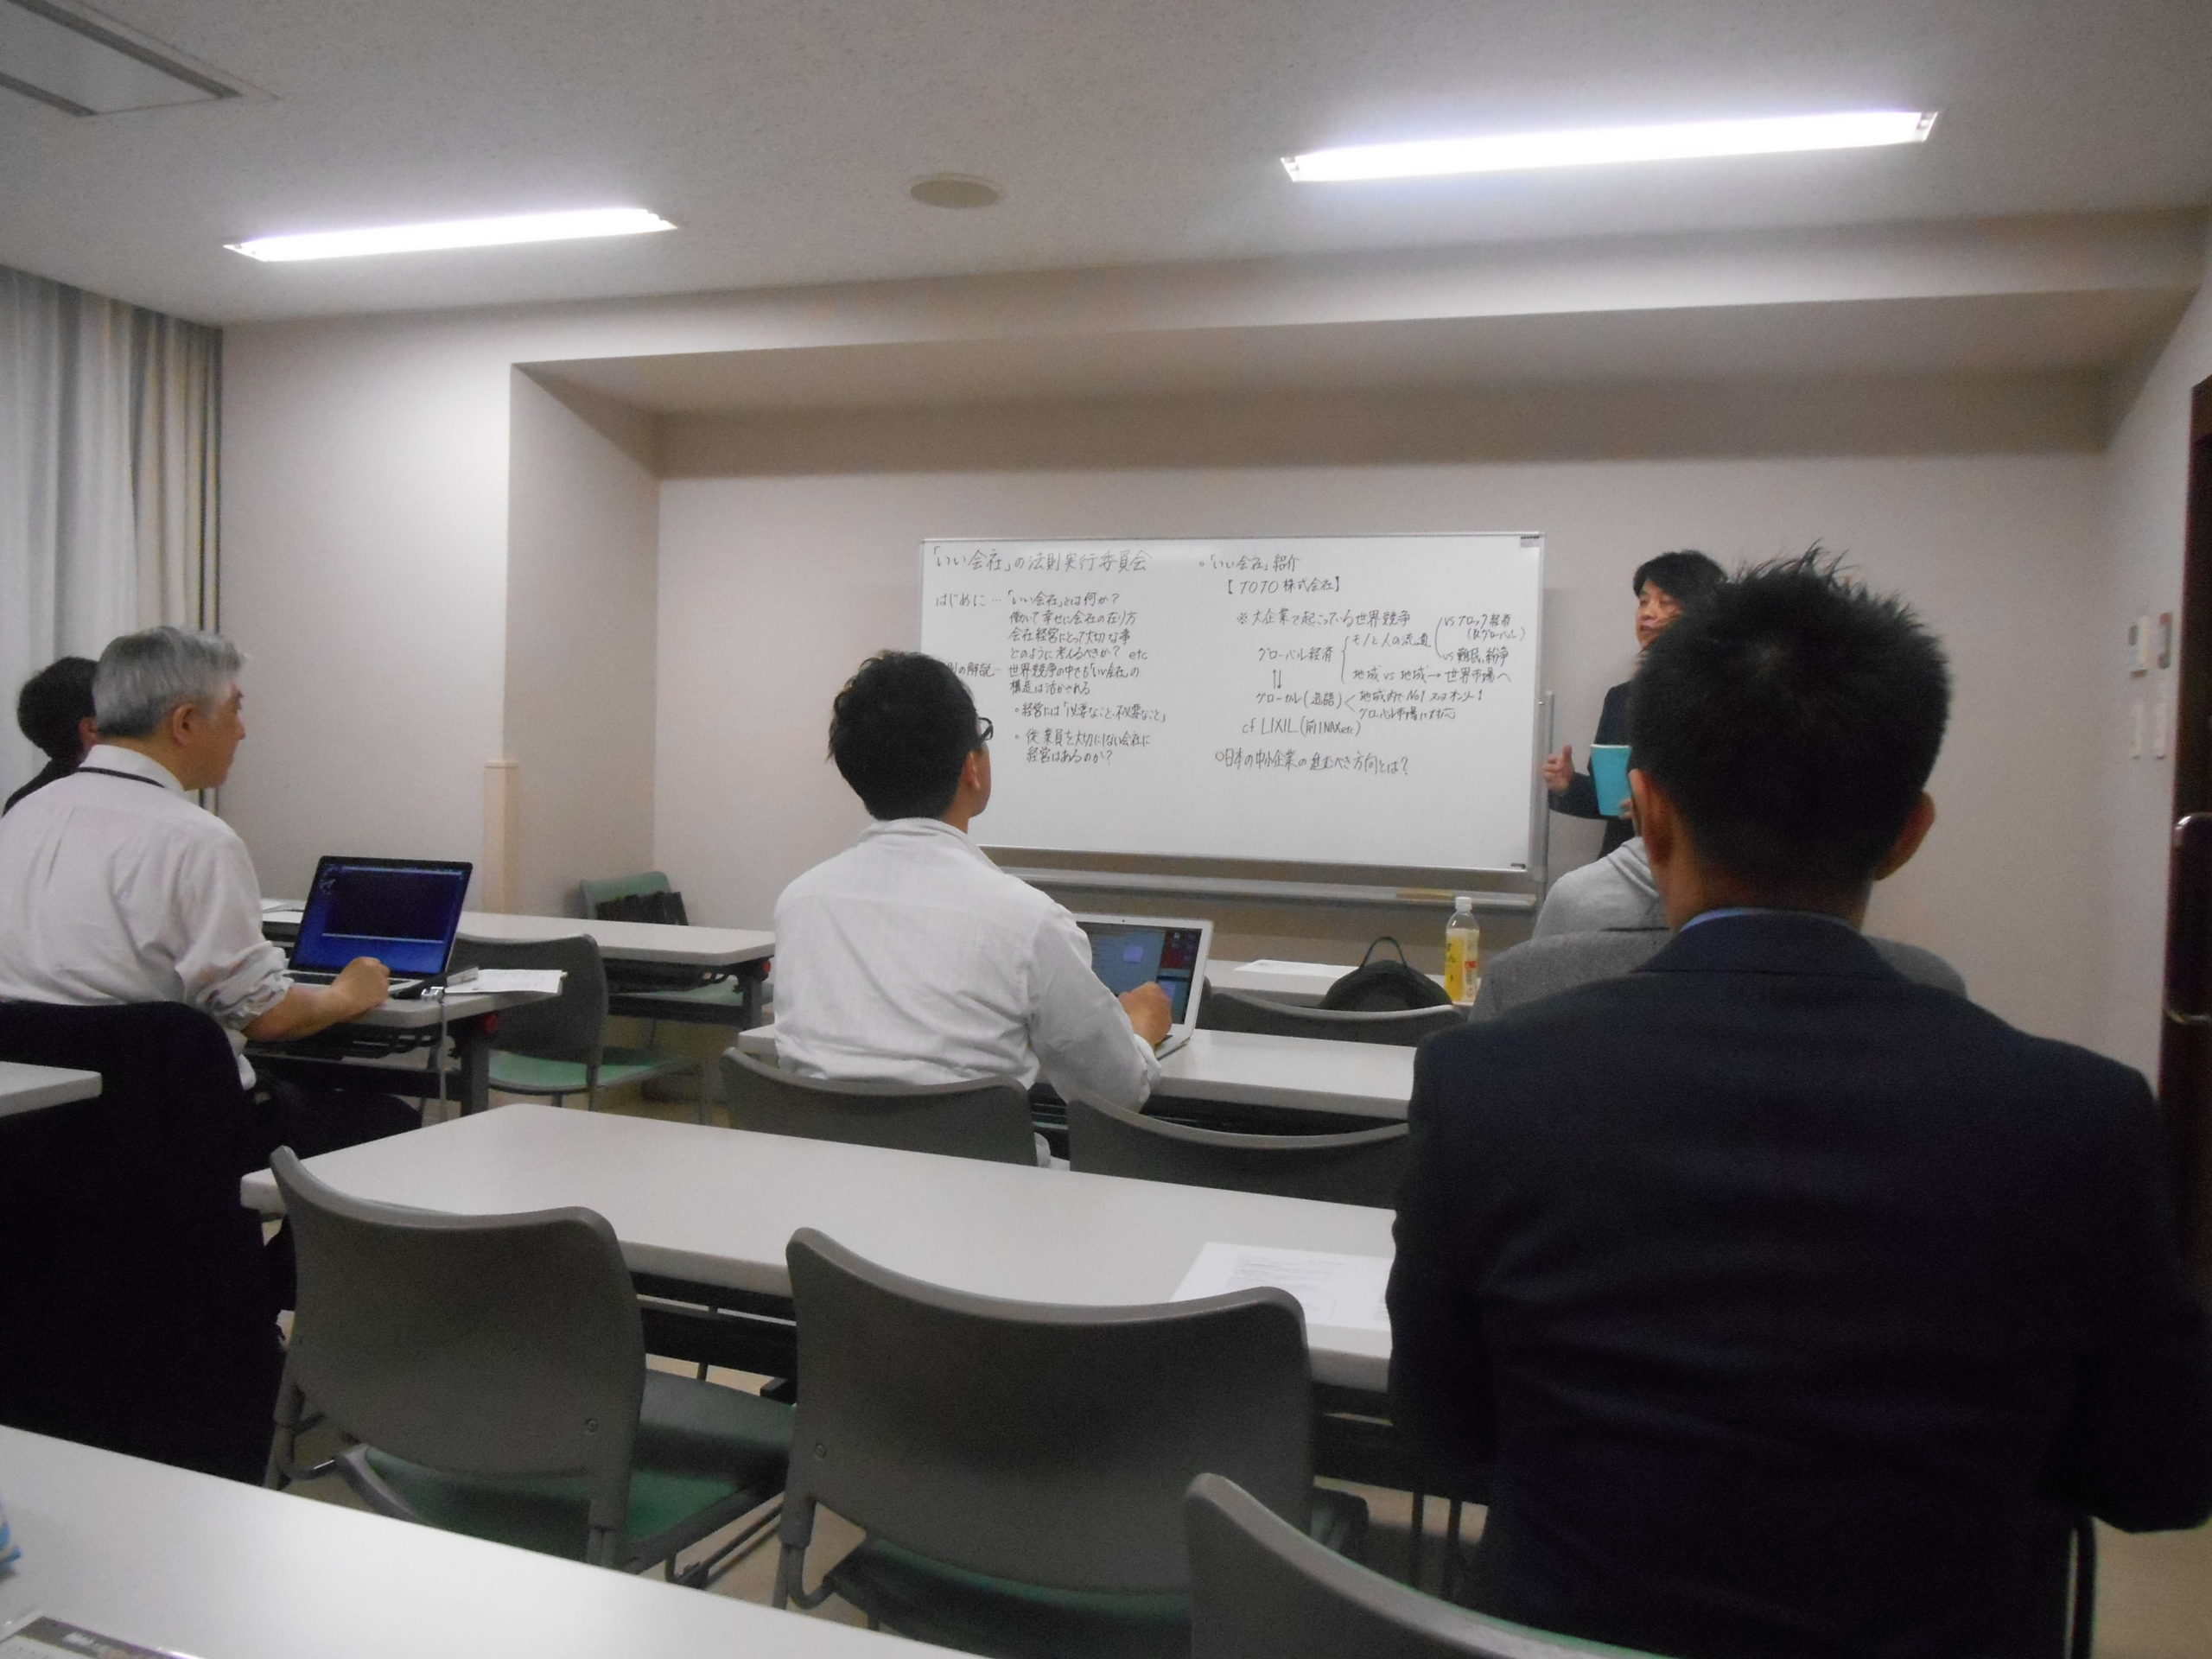 DSCN0135 165e scaled - 12月5日 第82回 いい会社の法則実行委員会 首都圏勉強会